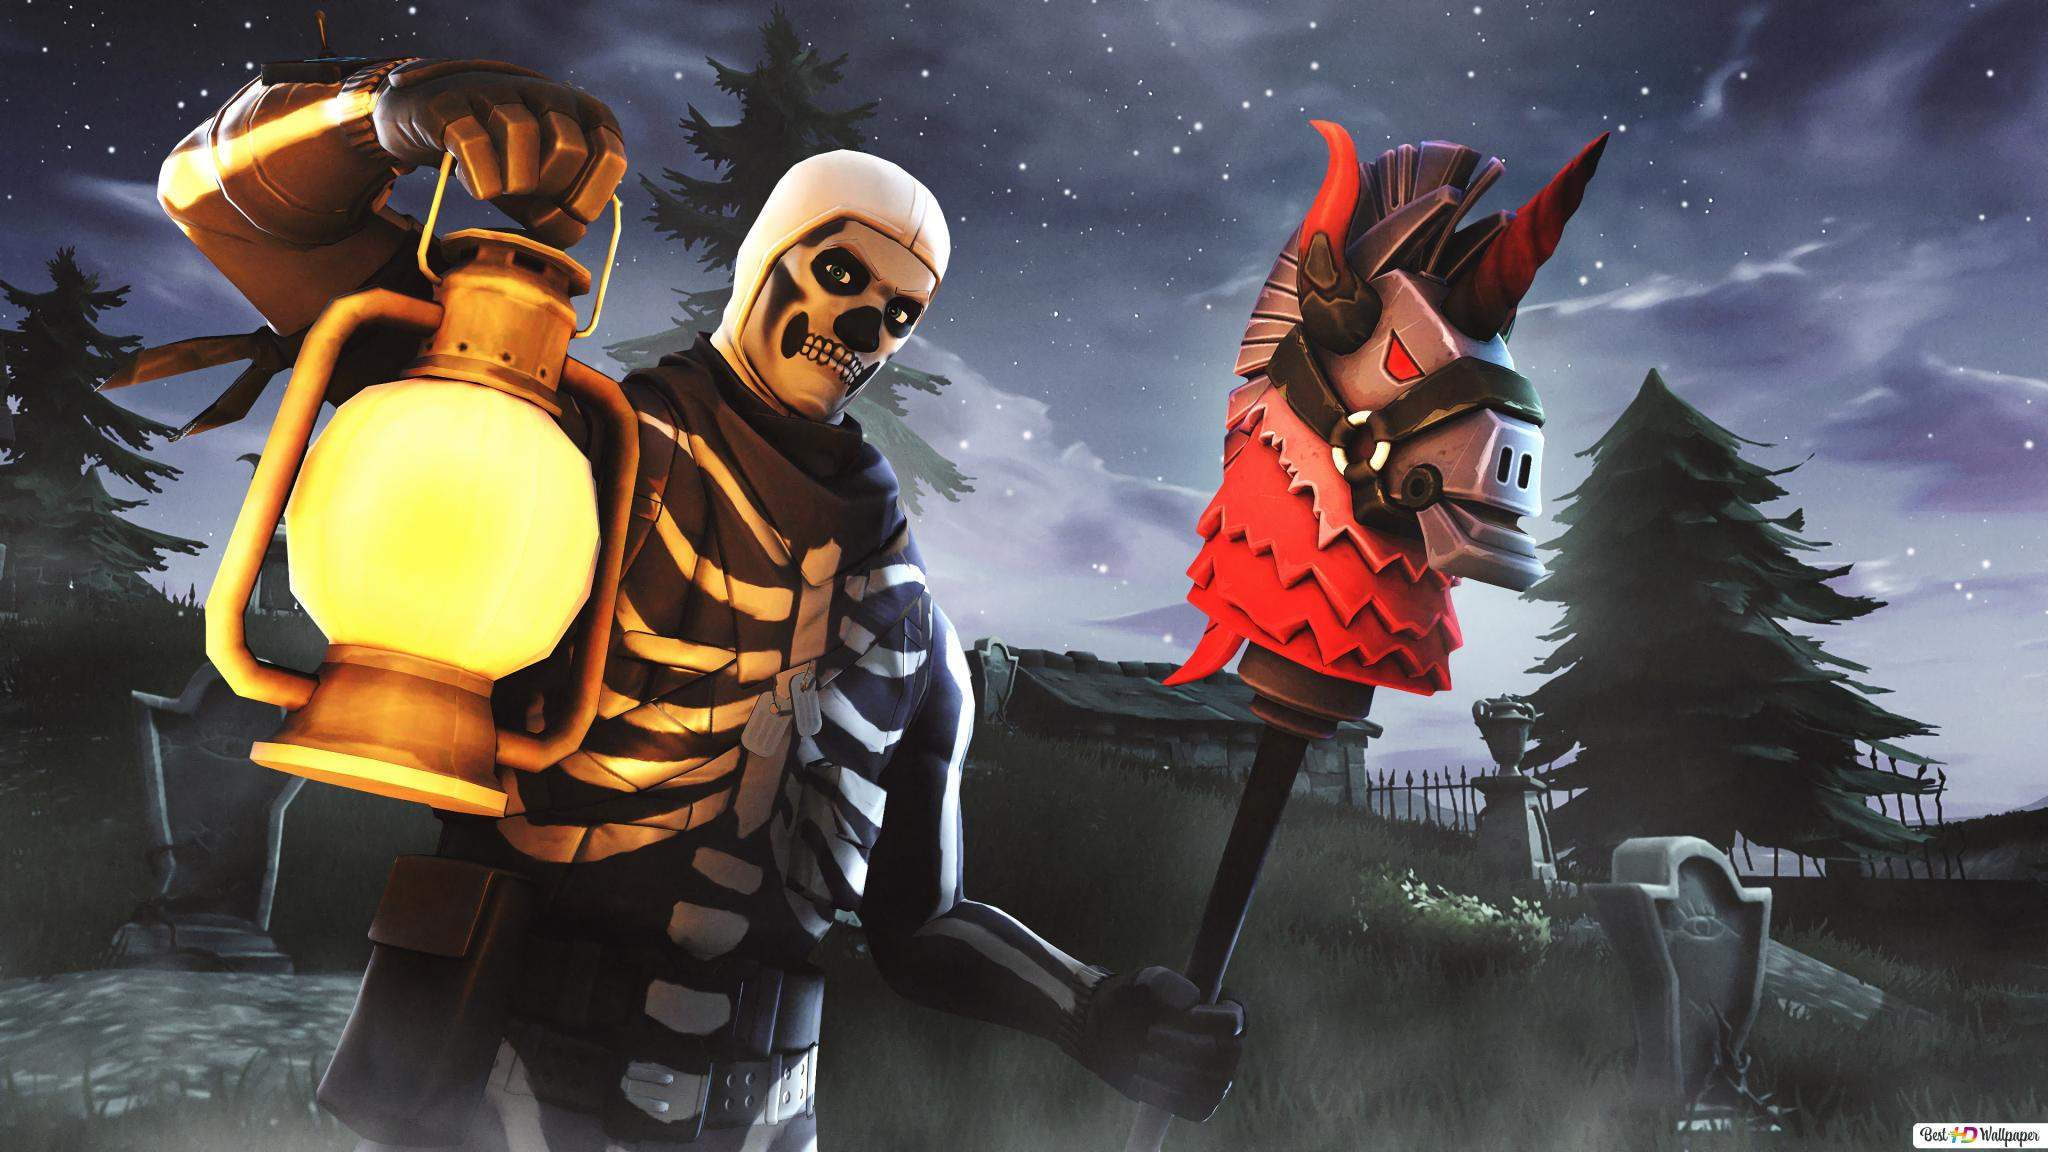 Fortnite Skull Trooper Hd Wallpaper Download